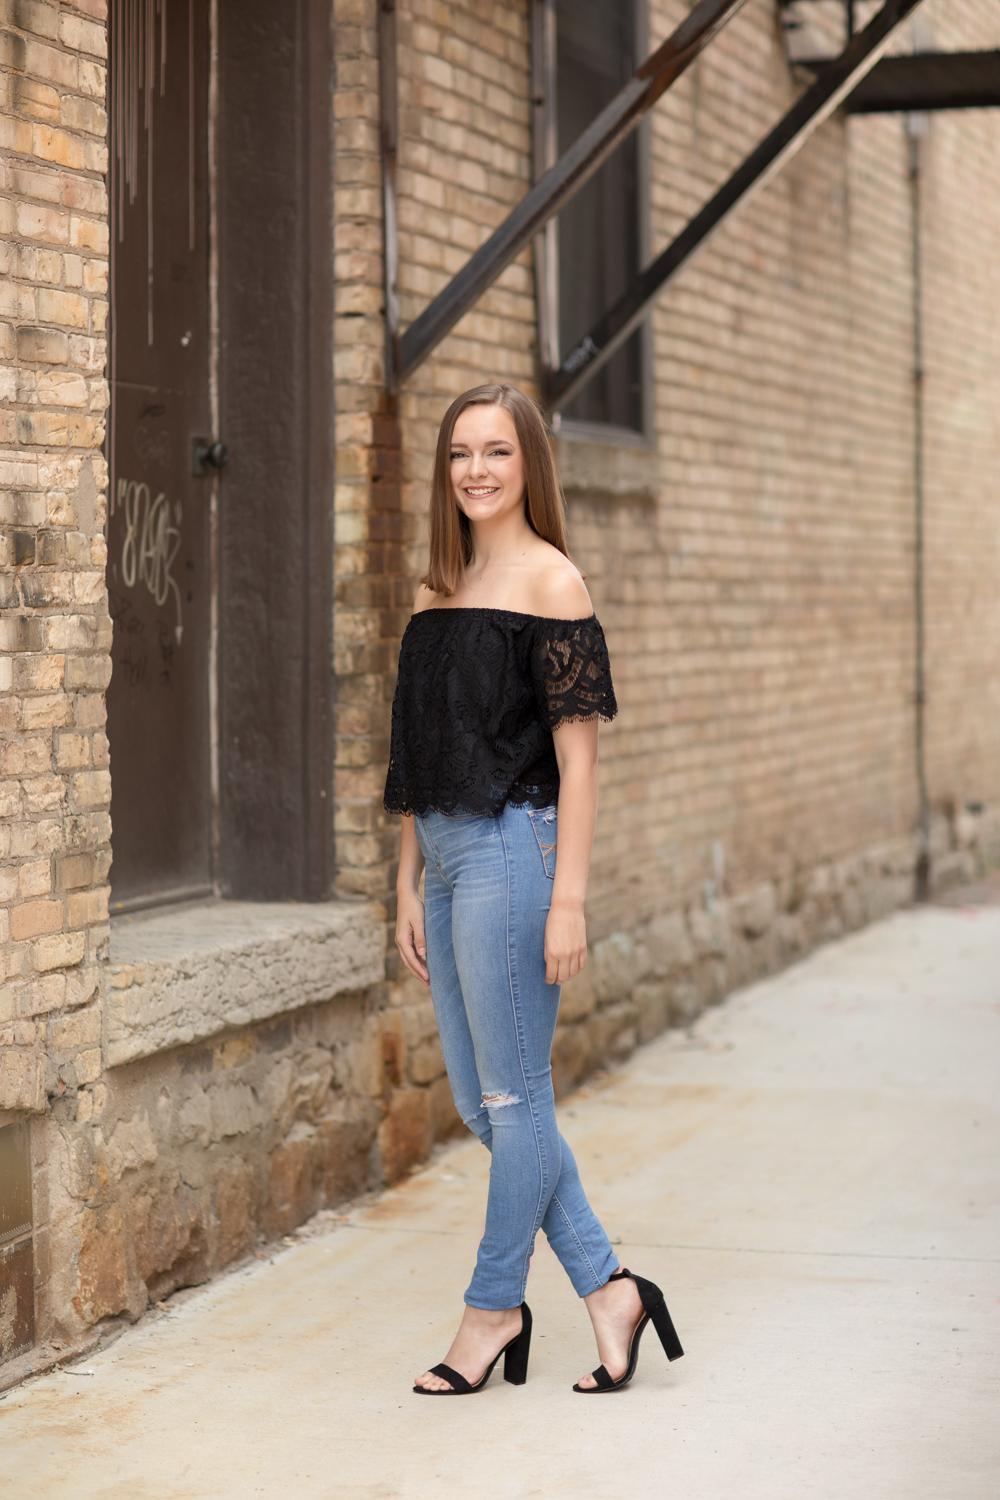 jill_hogan_green_Bay_senior_photography (15 of 19).jpg